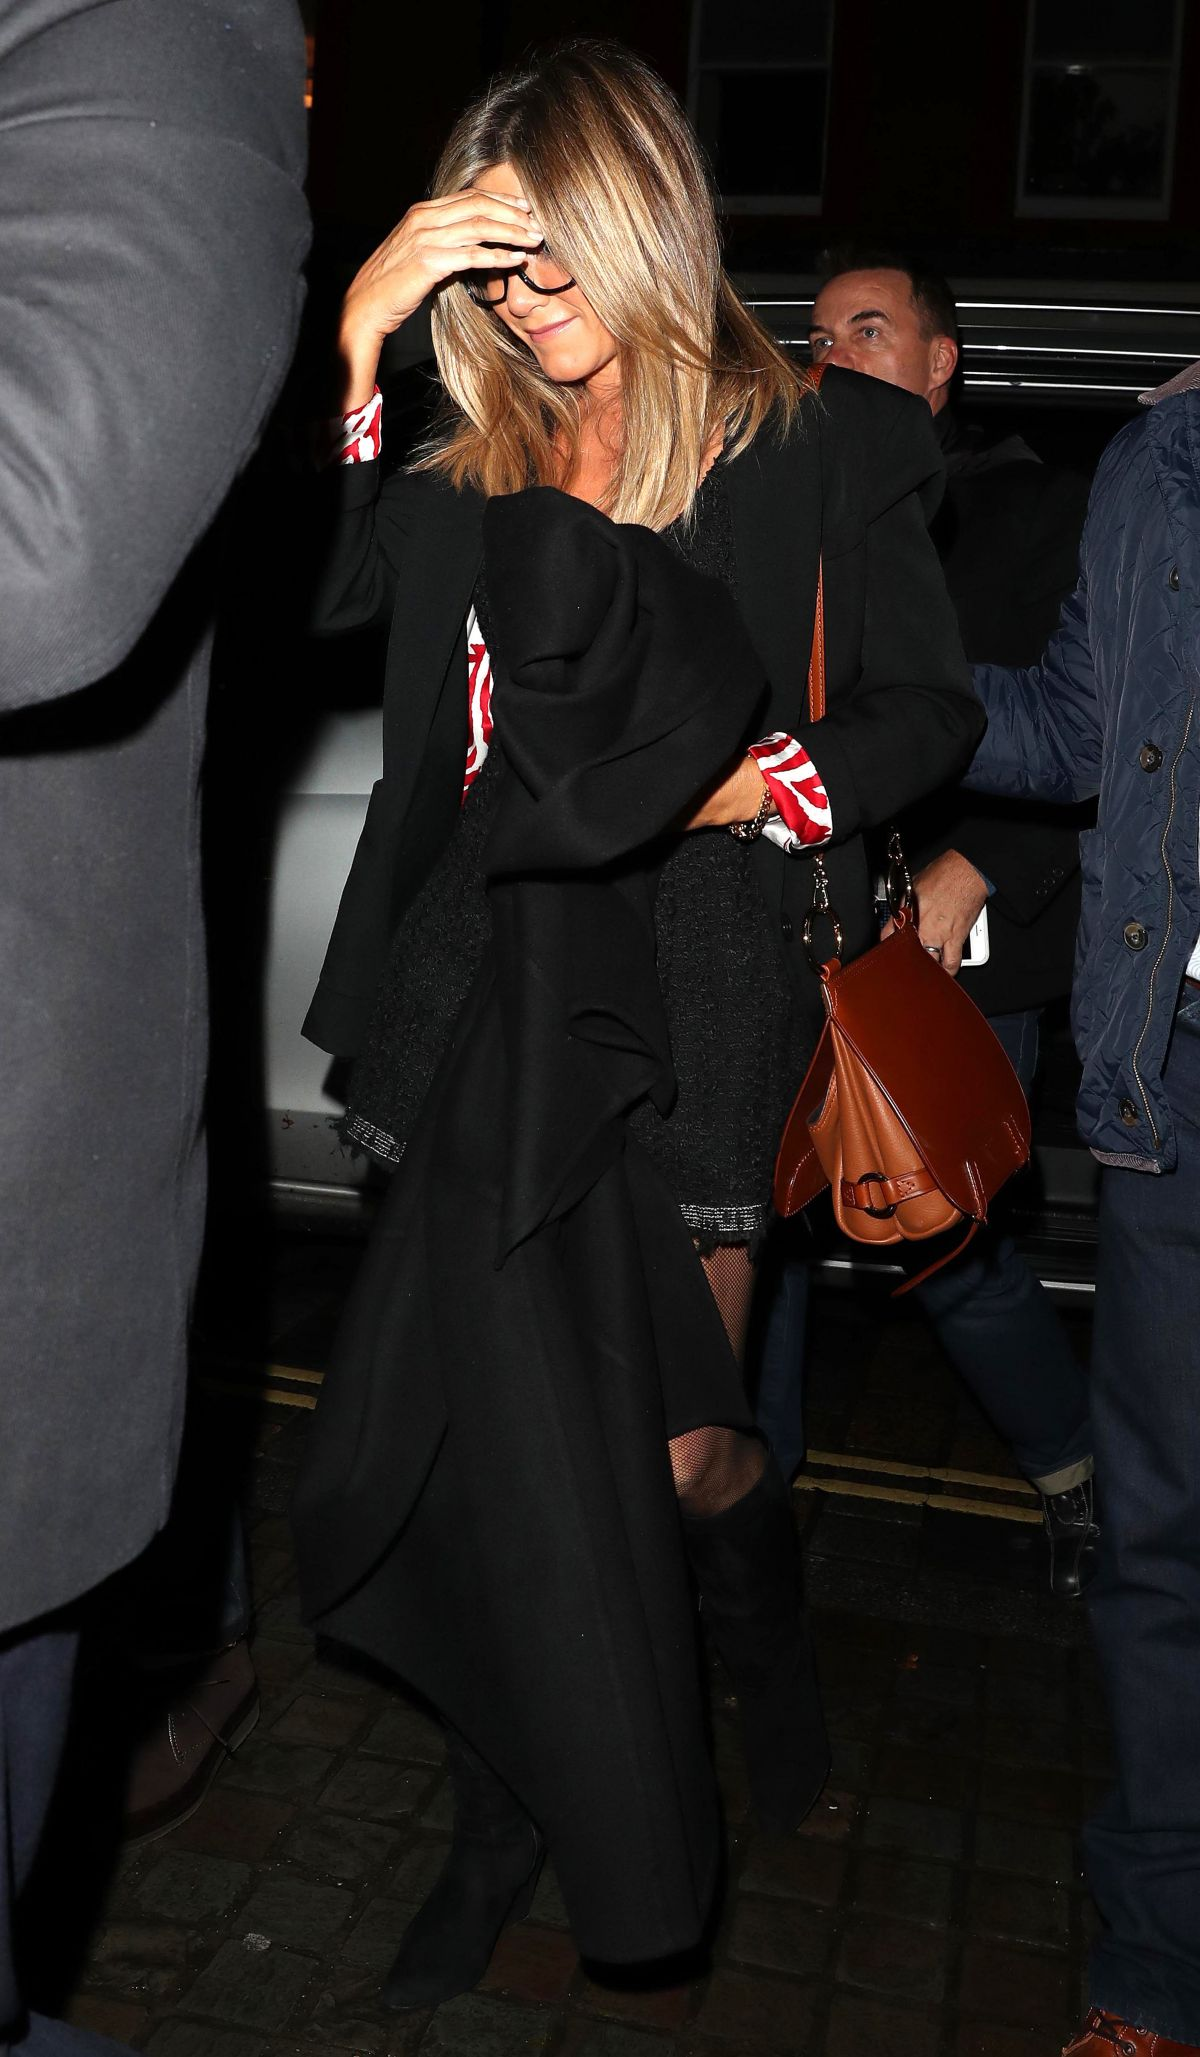 Jennifer Aniston At the Chiltern Firehouse in London   jennifer-aniston-at-the-chiltern-firehouse-in-london_2